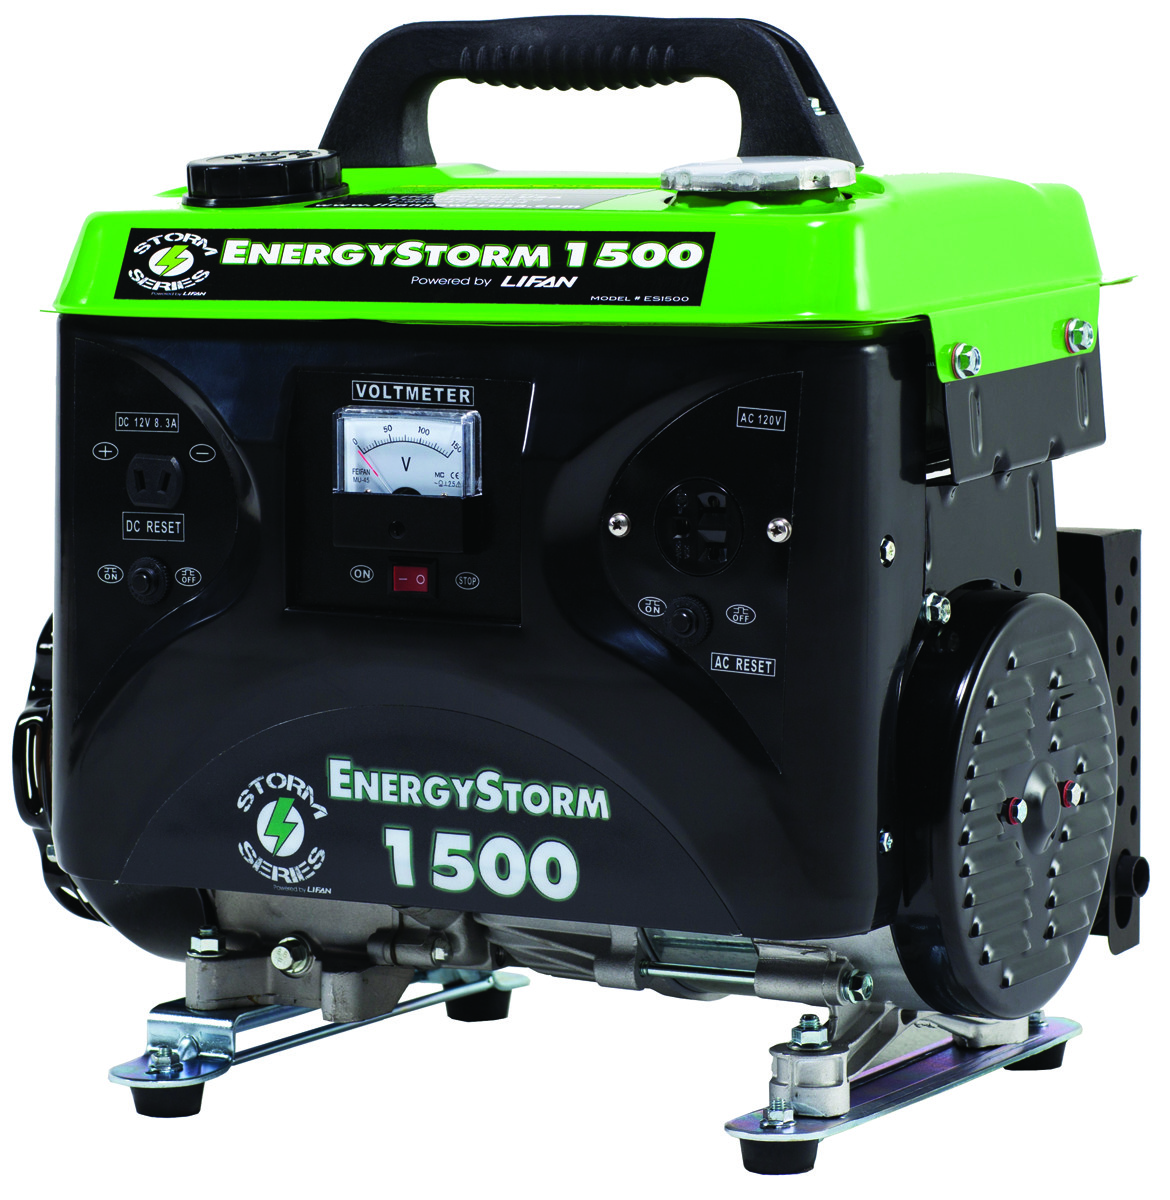 Lifan Power Es1500ca Energy Storm 1500 Watt Ohv Generator 120v On Reset Tap To Expand